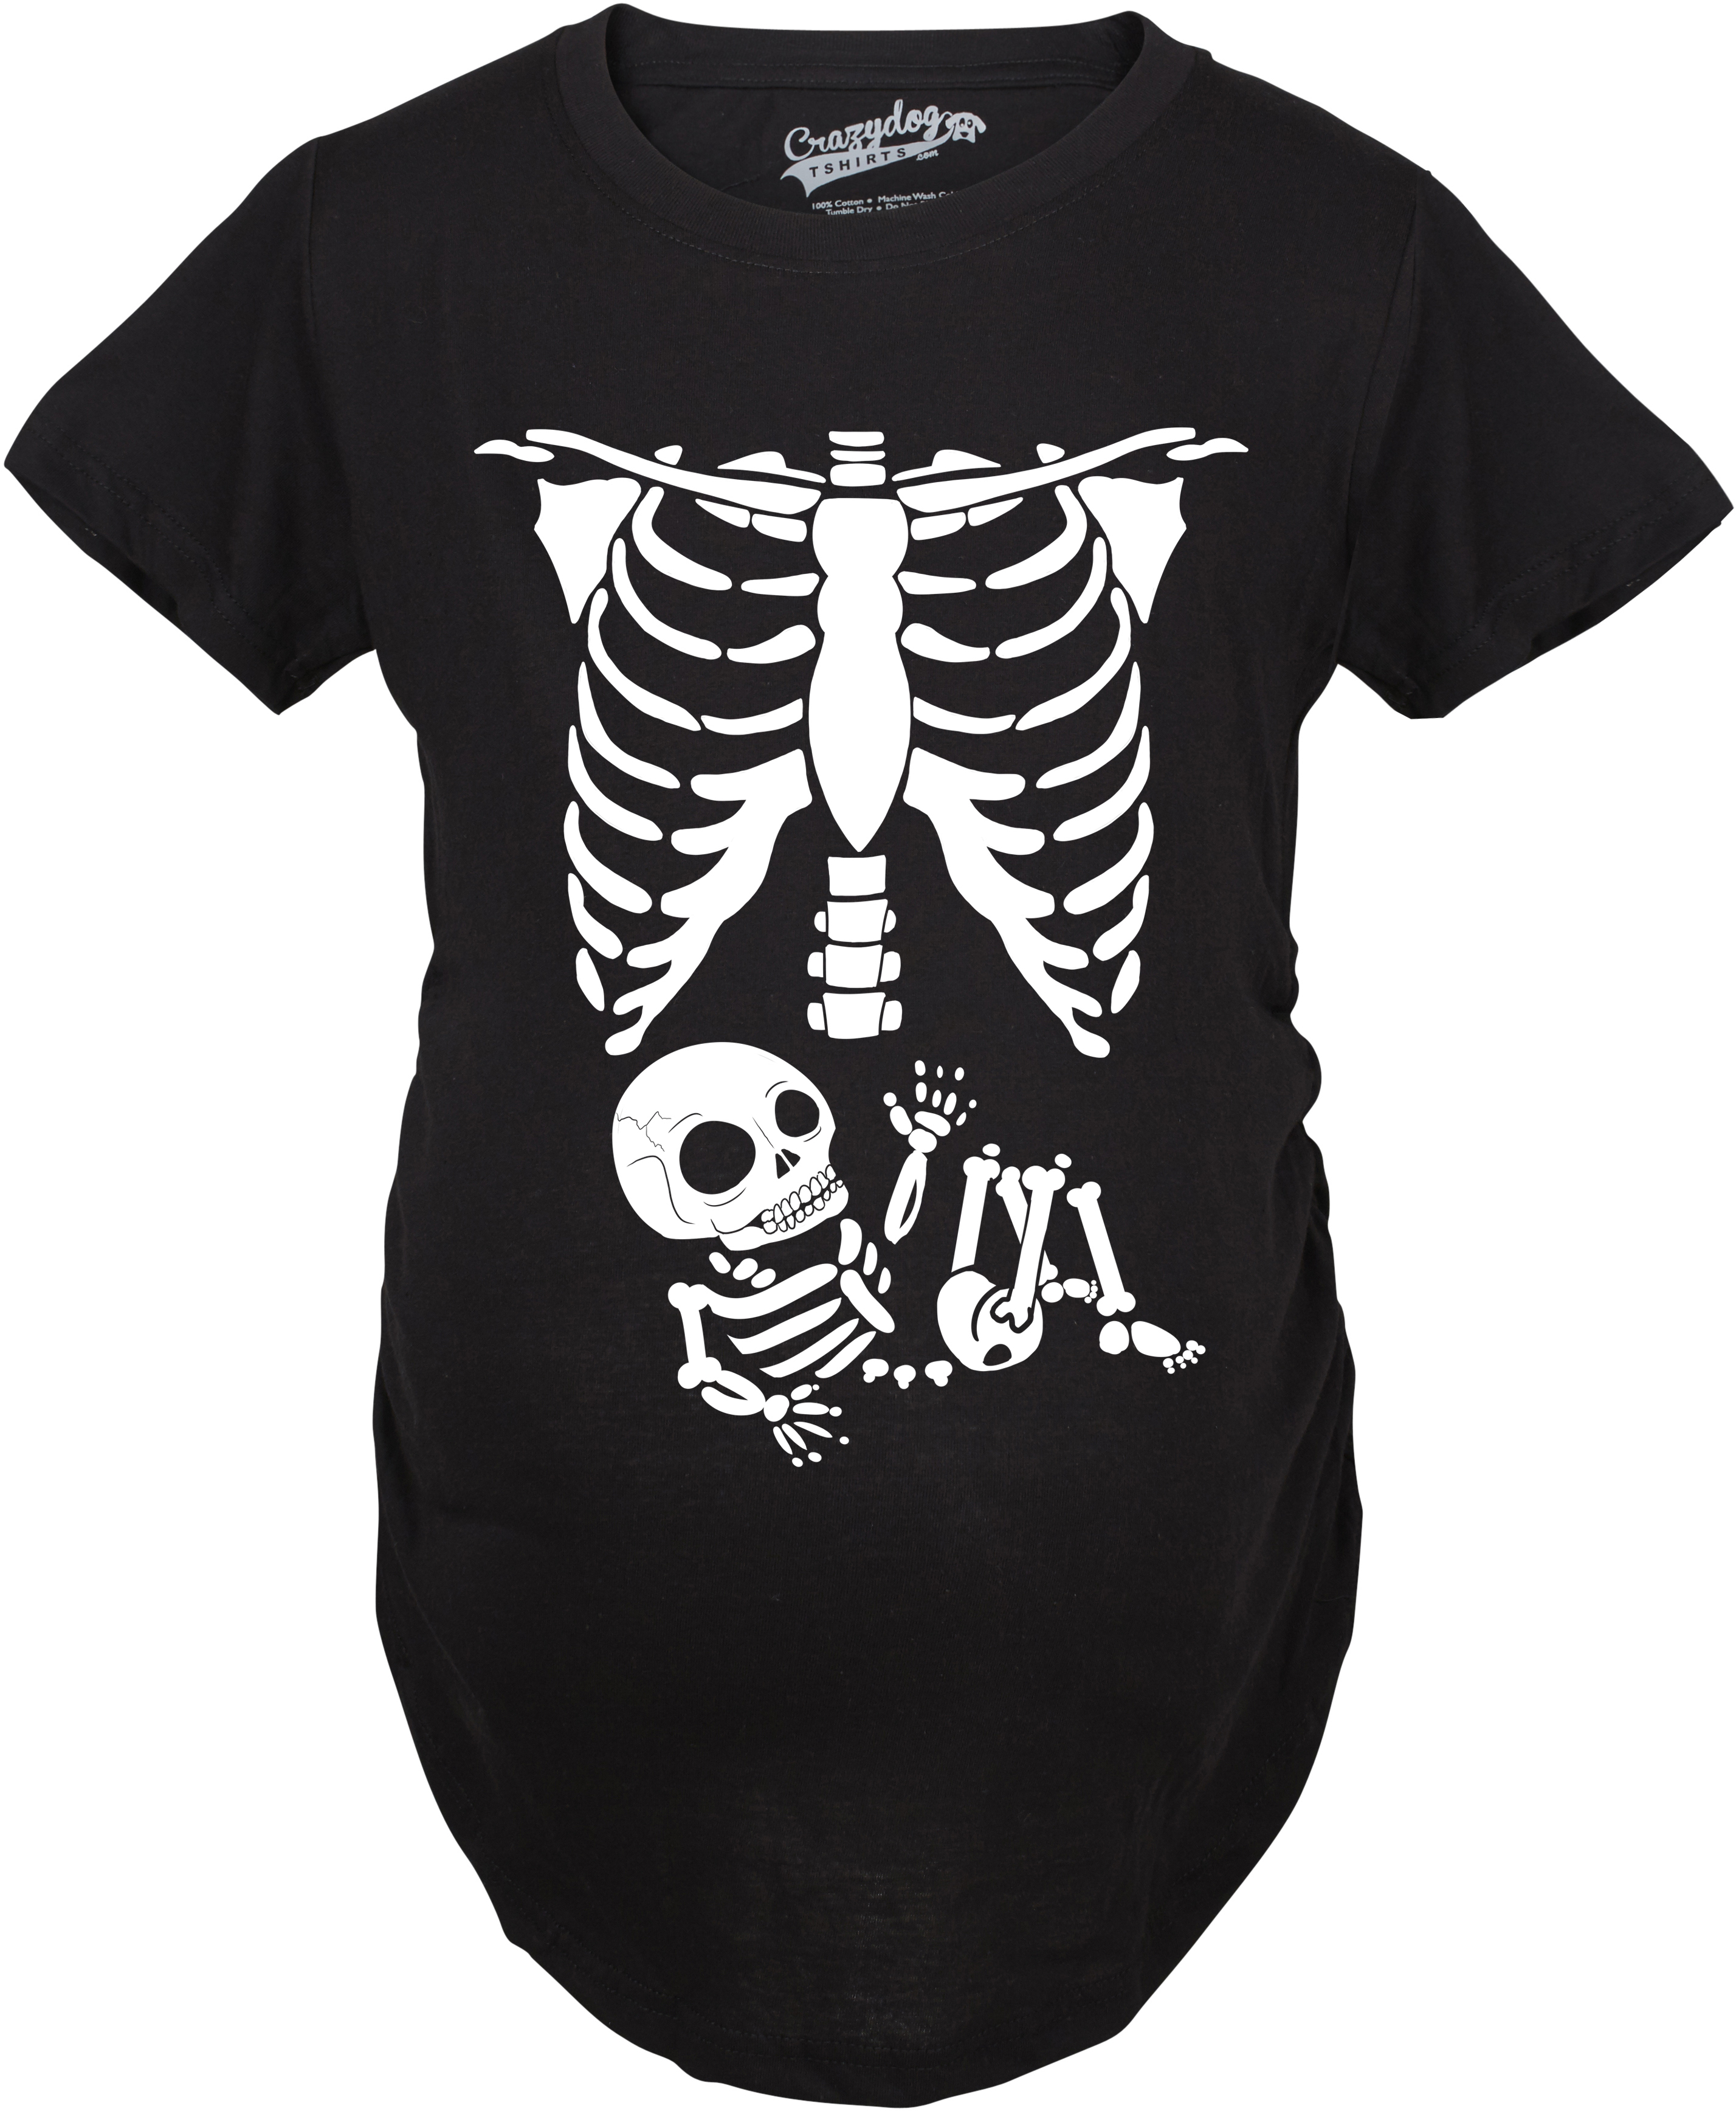 Baby Skeleton Shirts. Showing 40 of results that match your query. Search Product Result. Product - Halloween Skeleton Glow In The Dark Costume T-Shirt. Product Image. Price Product - Halloween Baby Skeleton Black Adult T-Shirt. Product Image. Price $ 95 - $ Product Title.